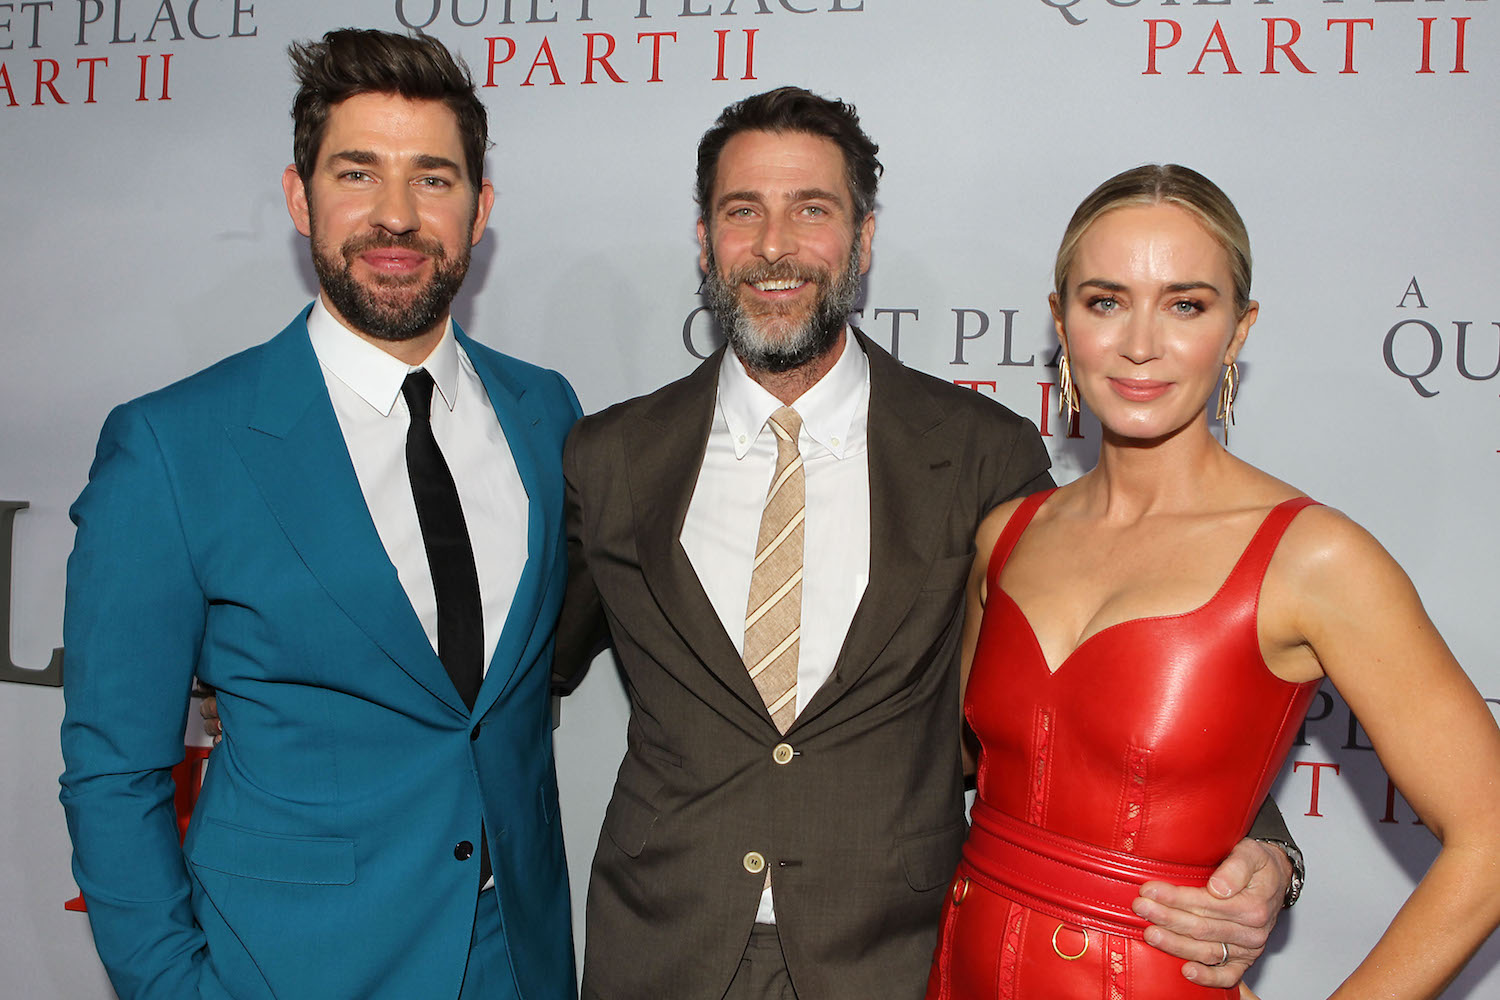 a quiet place part II premiere